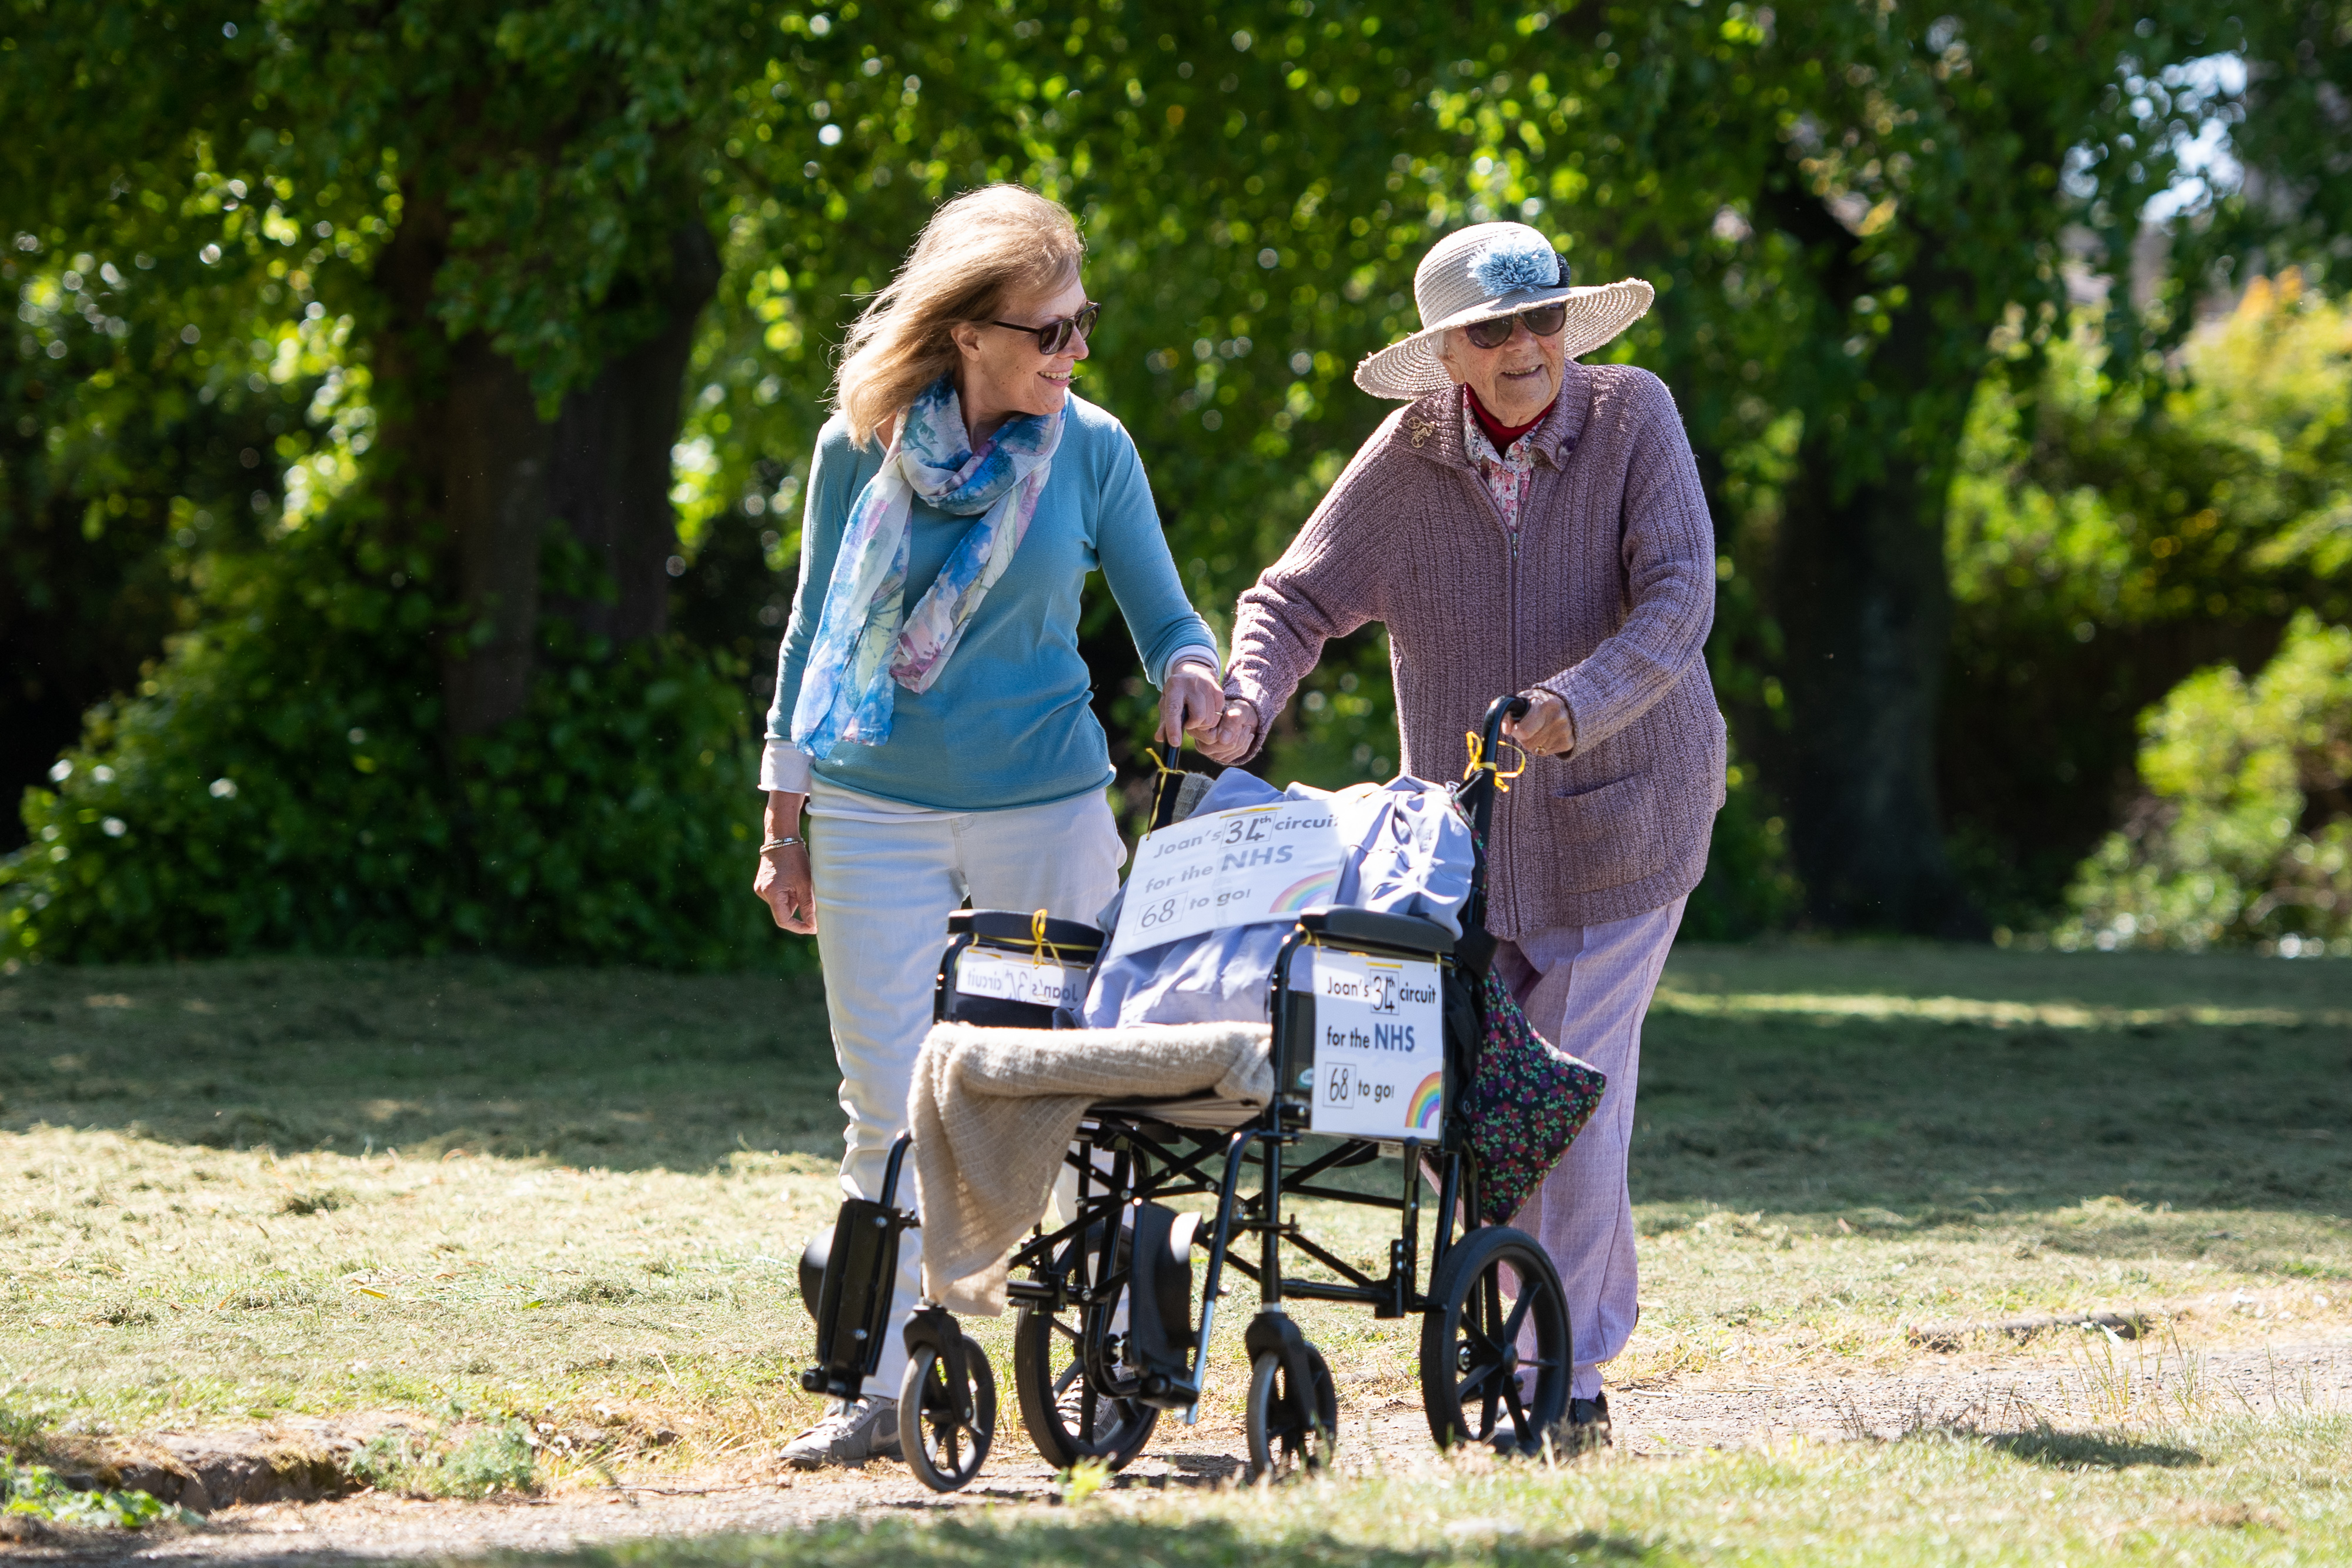 Former nurse Joan Rich, 101, walks through Allenby Park in Felixstowe, Suffolk, to raise money for NHS Charities Together. Mrs Rich, who uses a frame to aid her walking, aims to walk 102 laps of the park before her 102nd birthday on 11 September. (Photo by Joe Giddens/PA Images via Getty Images)